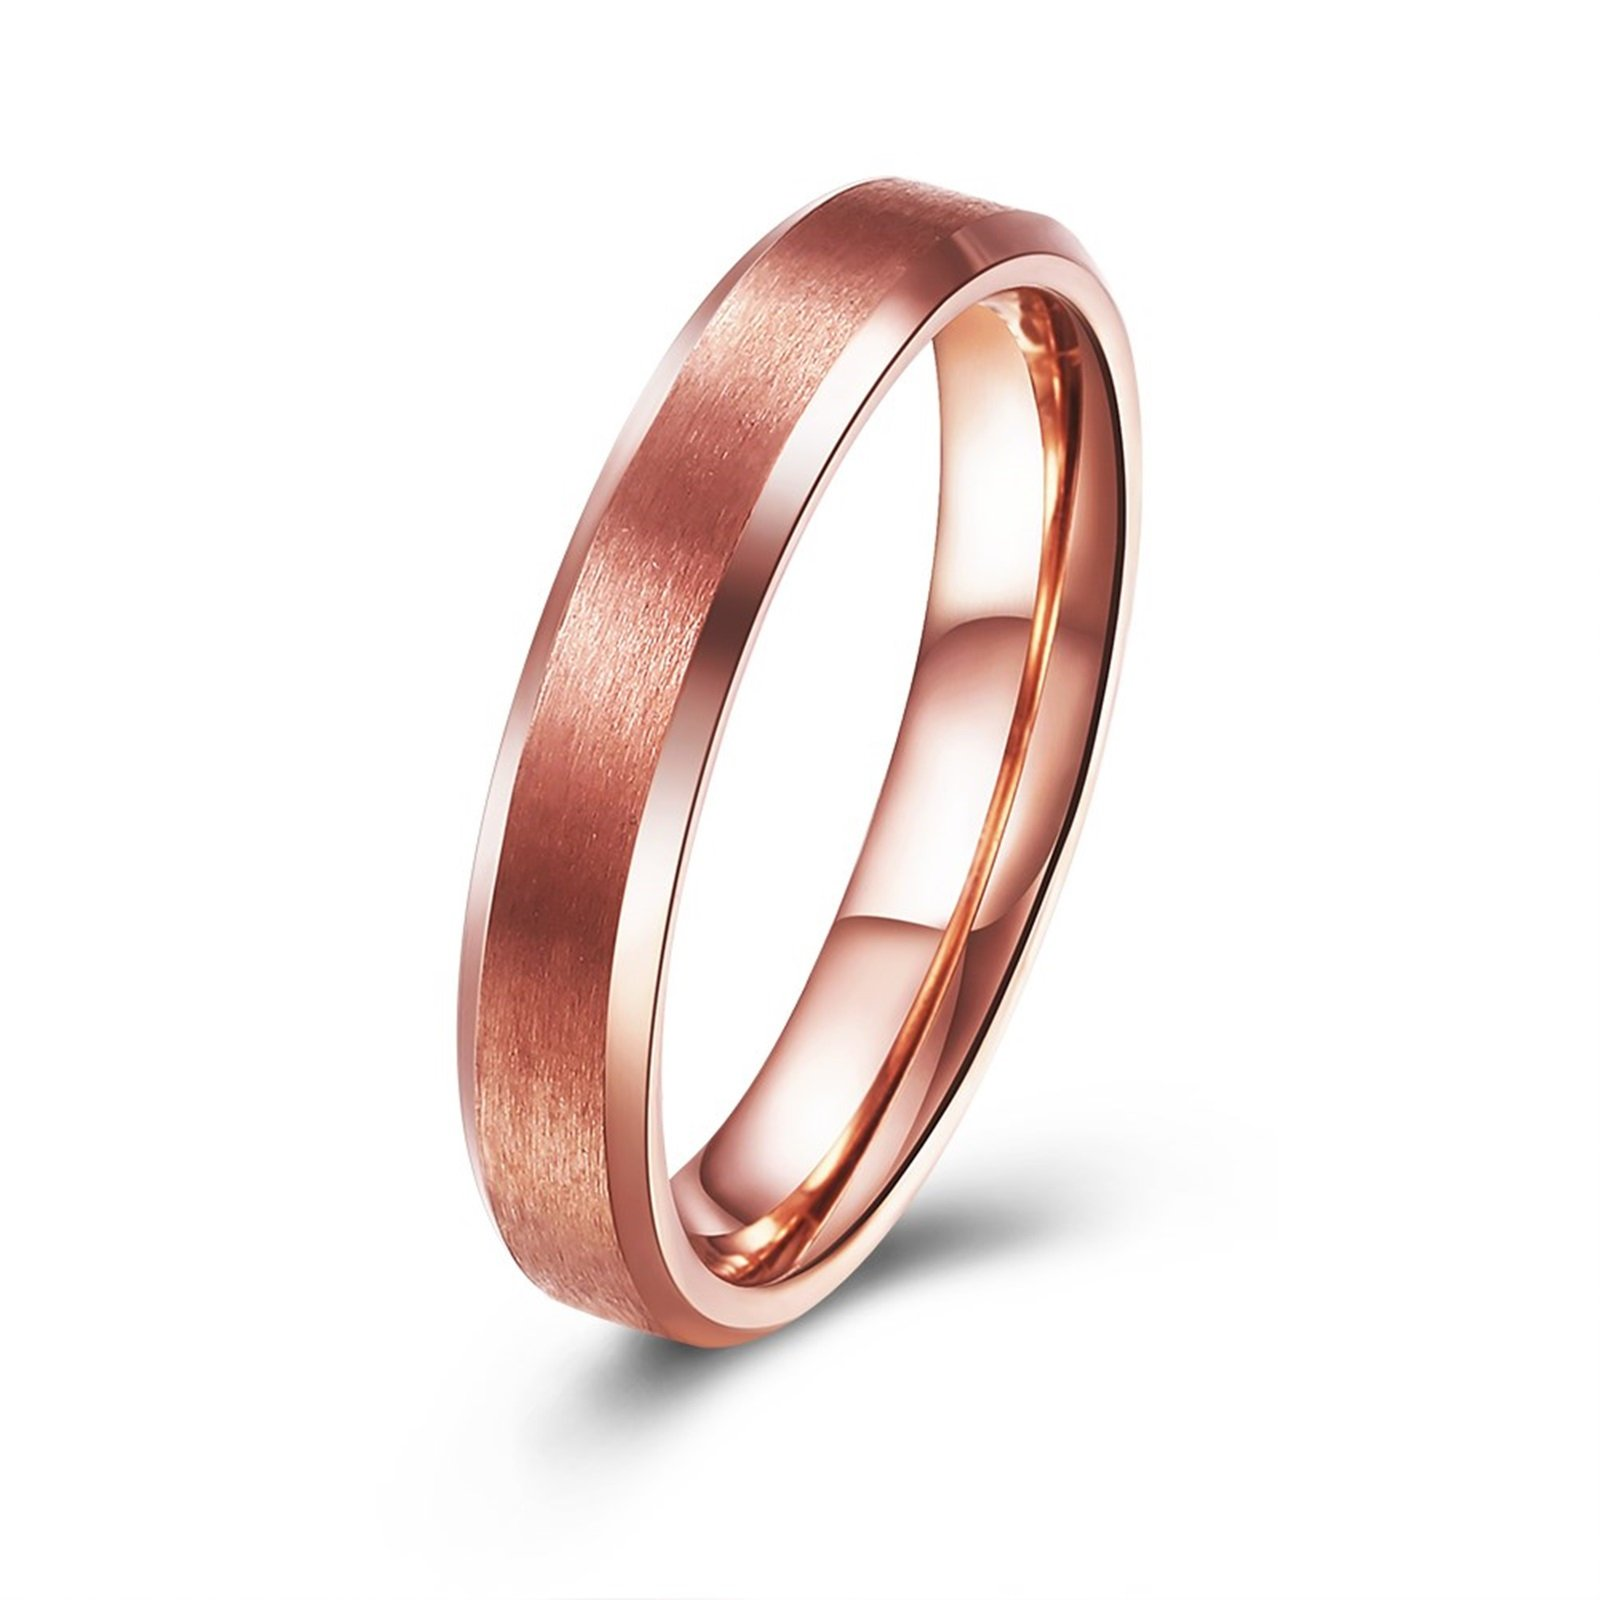 Epinki Stainless Steel Ring for Men Women 4MM Rose Gold Plated Brushed Wedding Band Size 10 Men Accessories